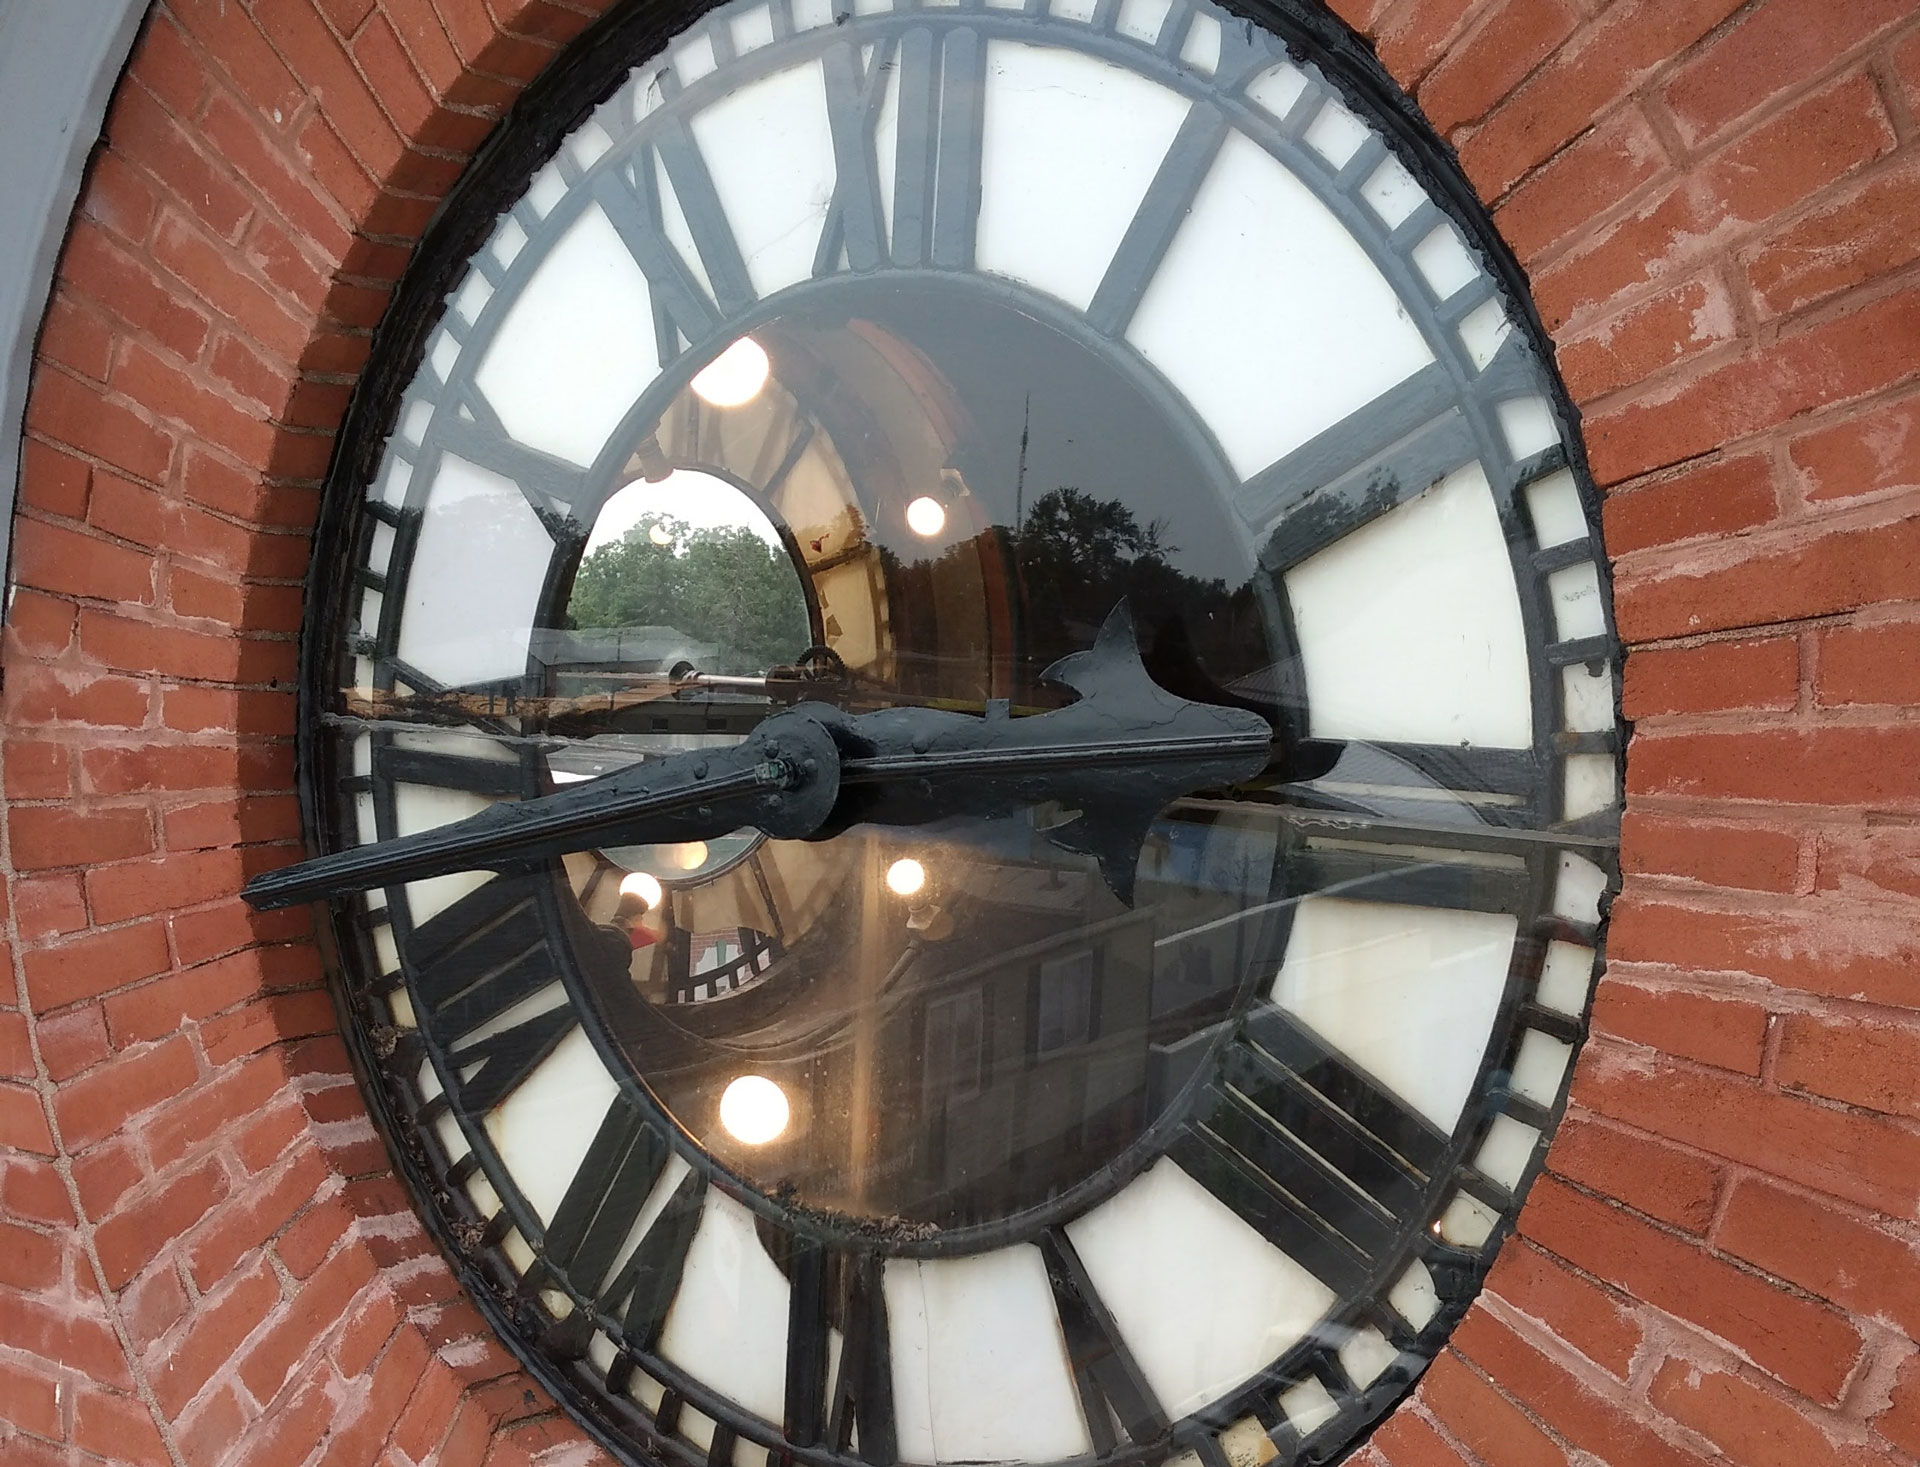 close up of the harriston post office clock face